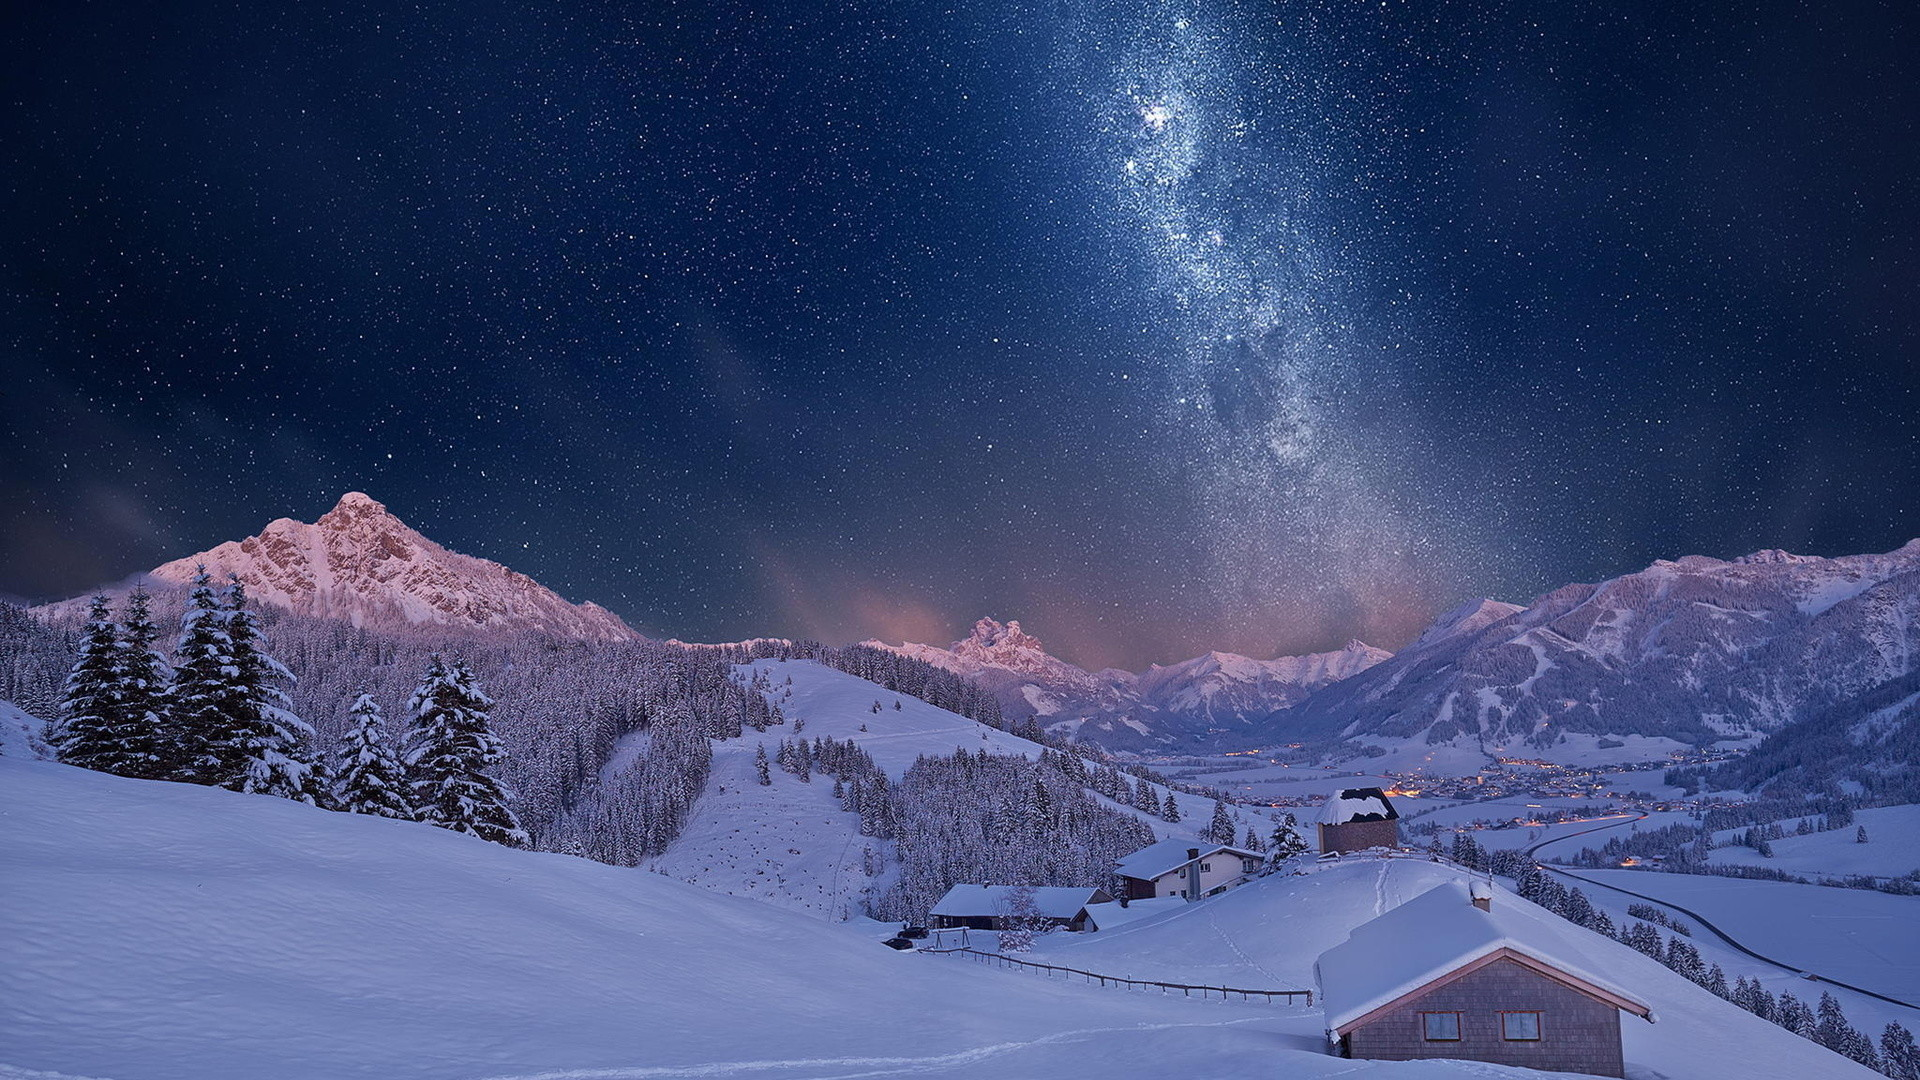 Wonderful Starry Night Above A Town In A Valley HD Desktop Background  wallpaper